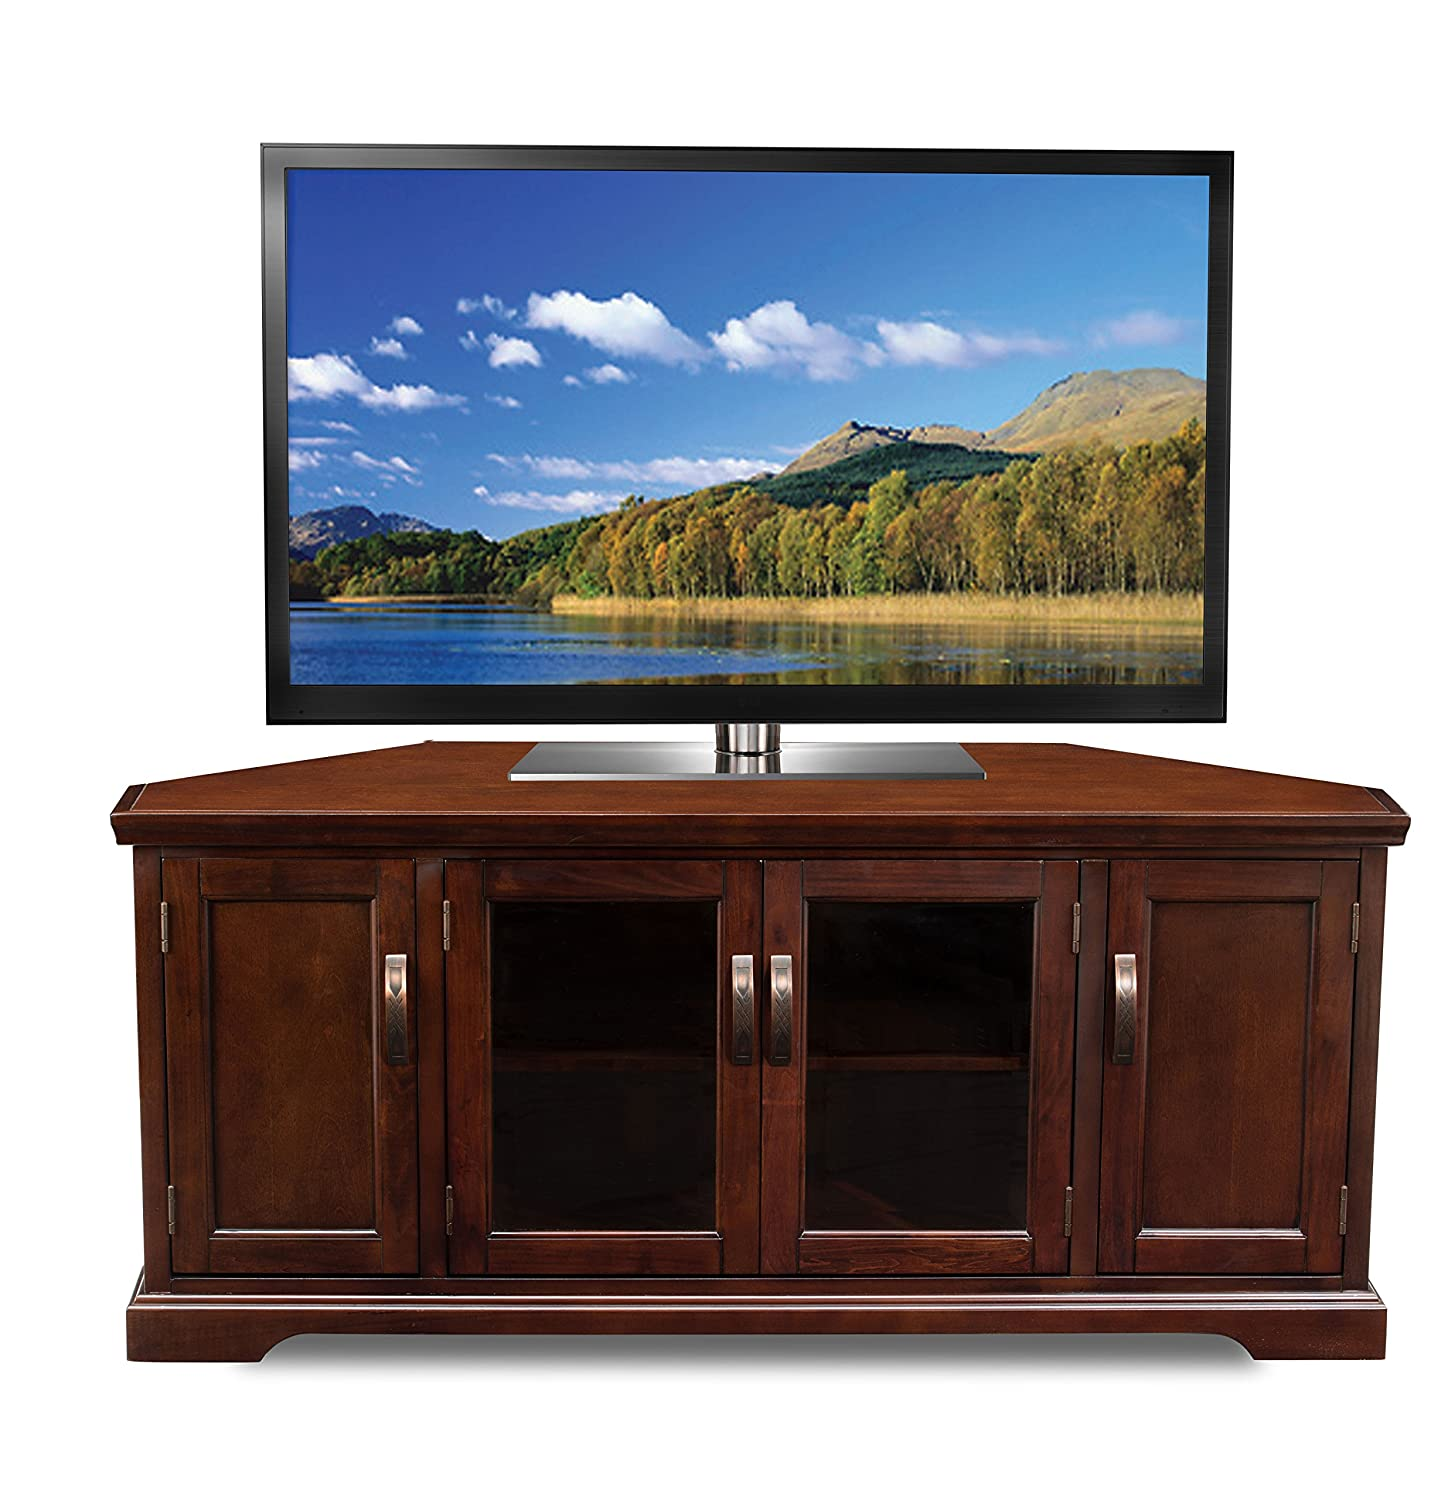 Amazon Com Leick 81386 Chocolate Cherry Corner Tv Stand 60